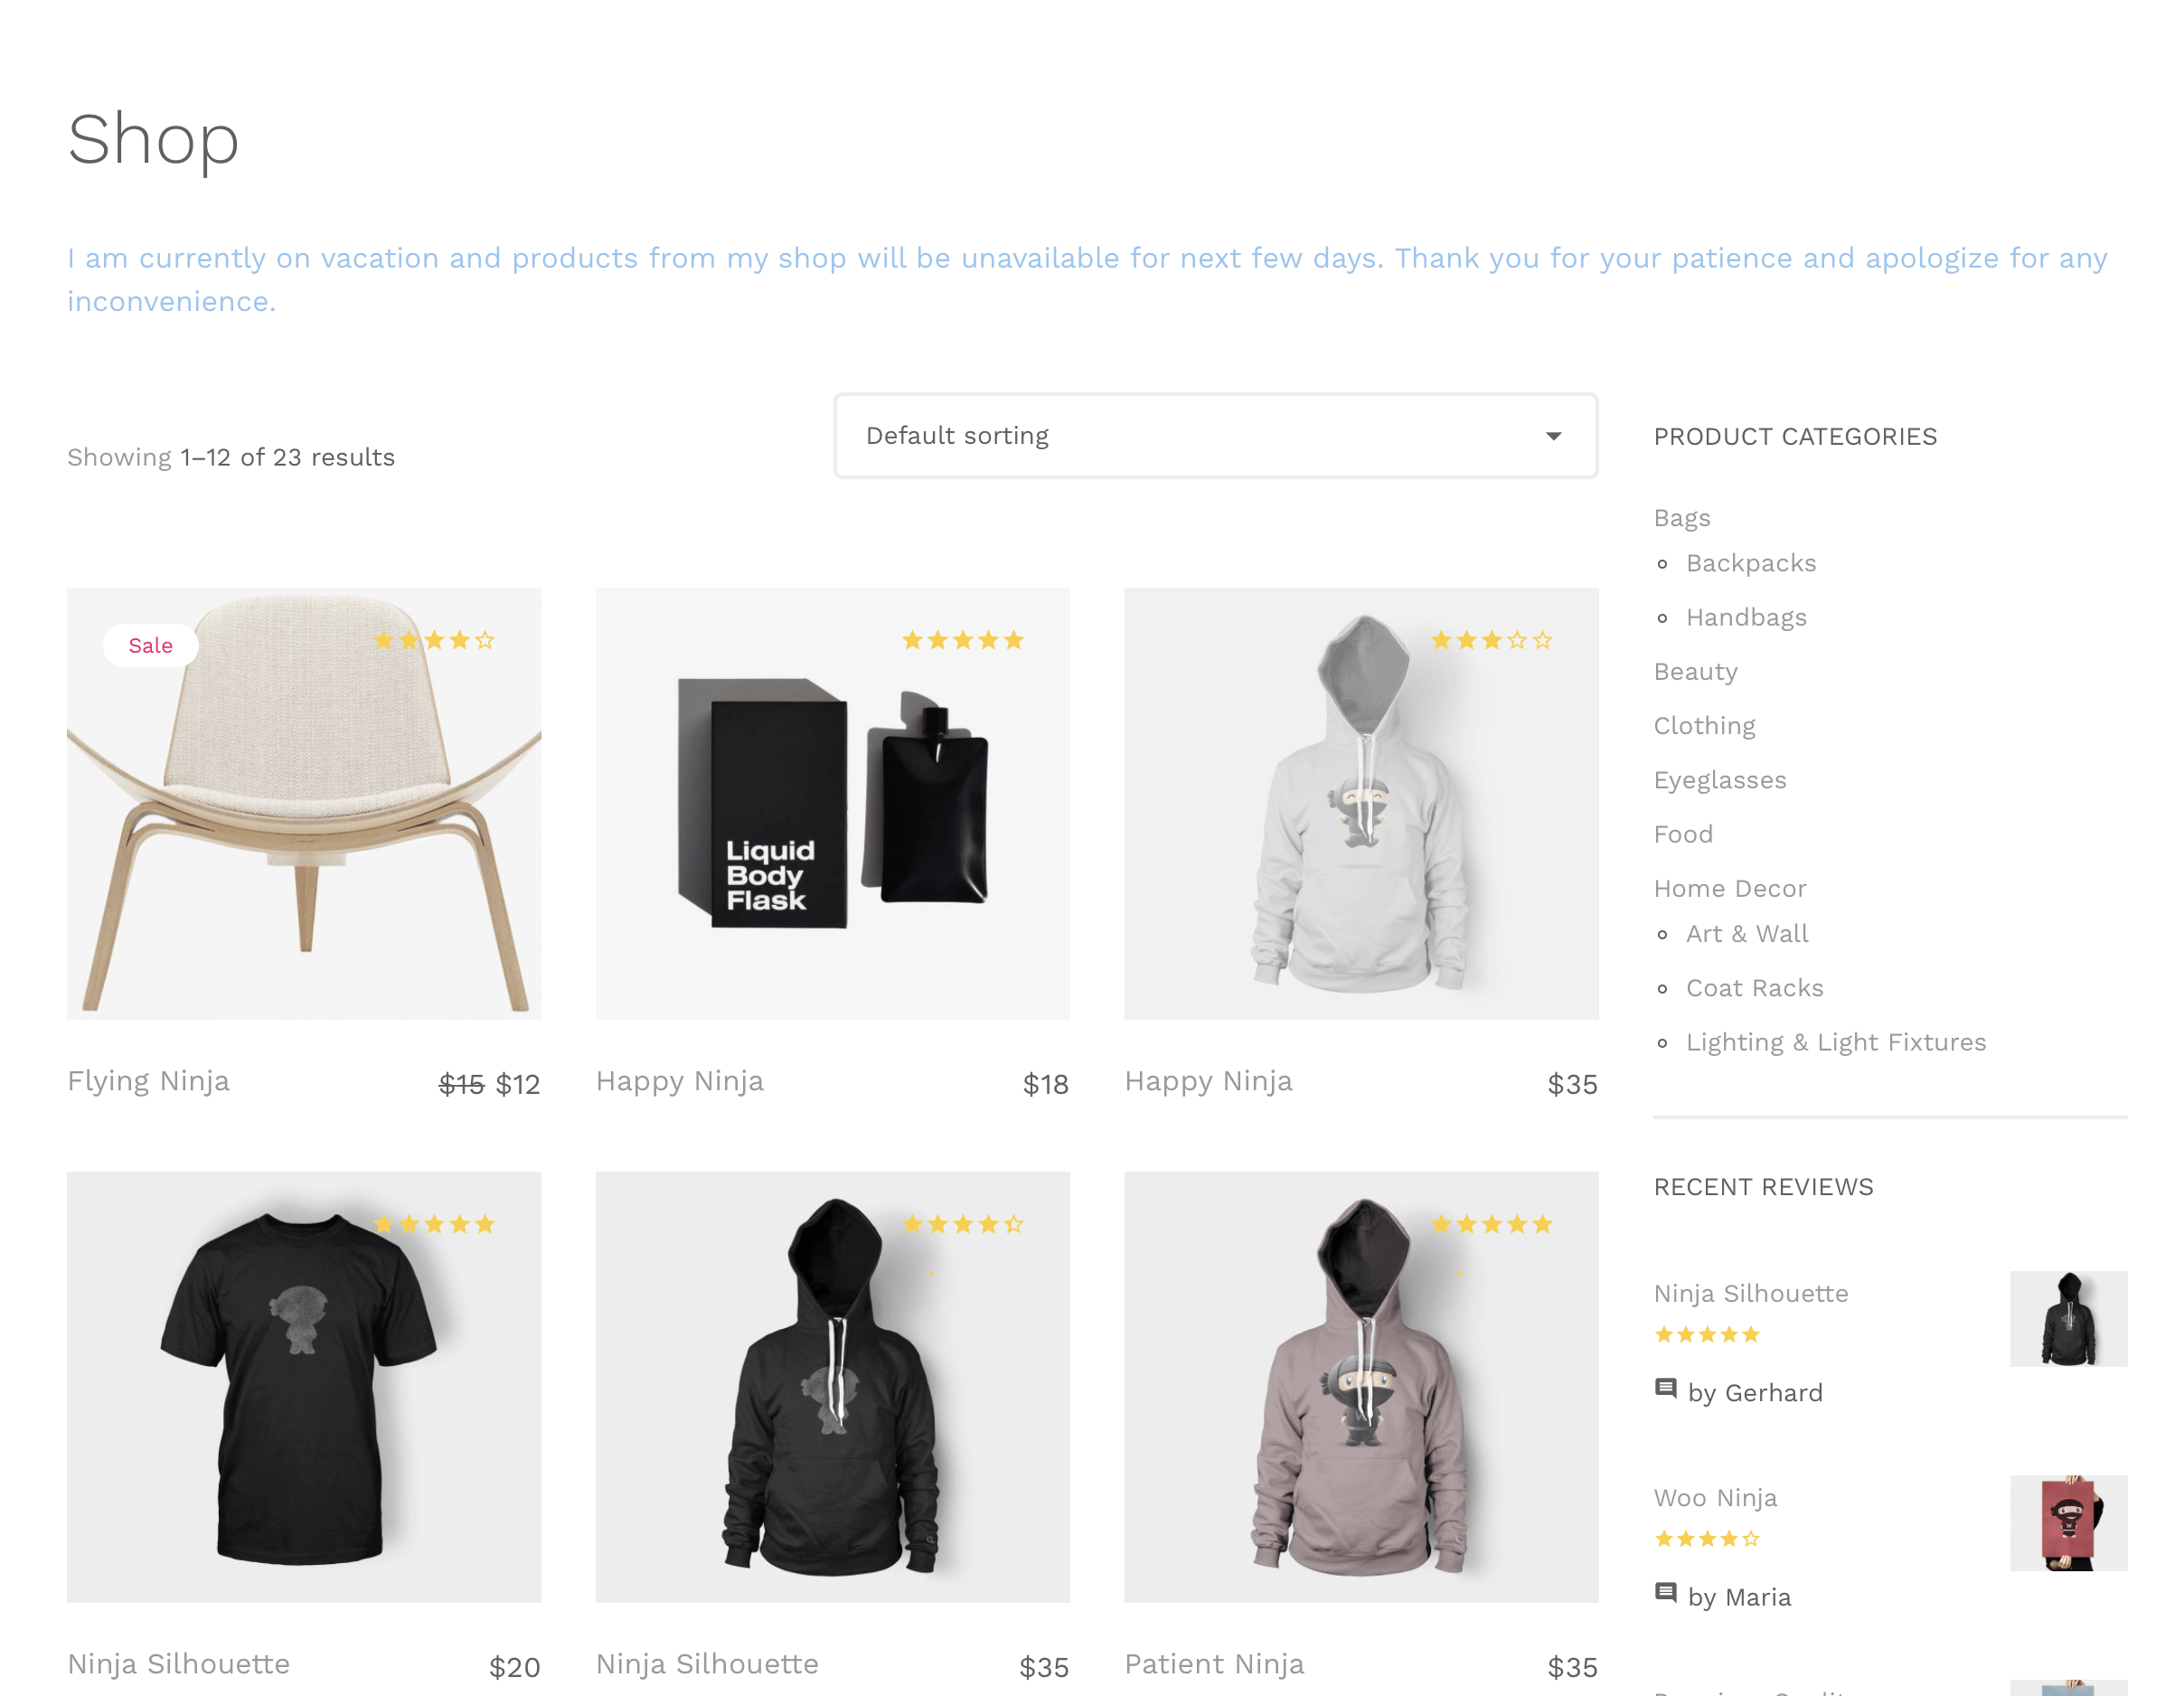 Displaying a notice at the top of shop page